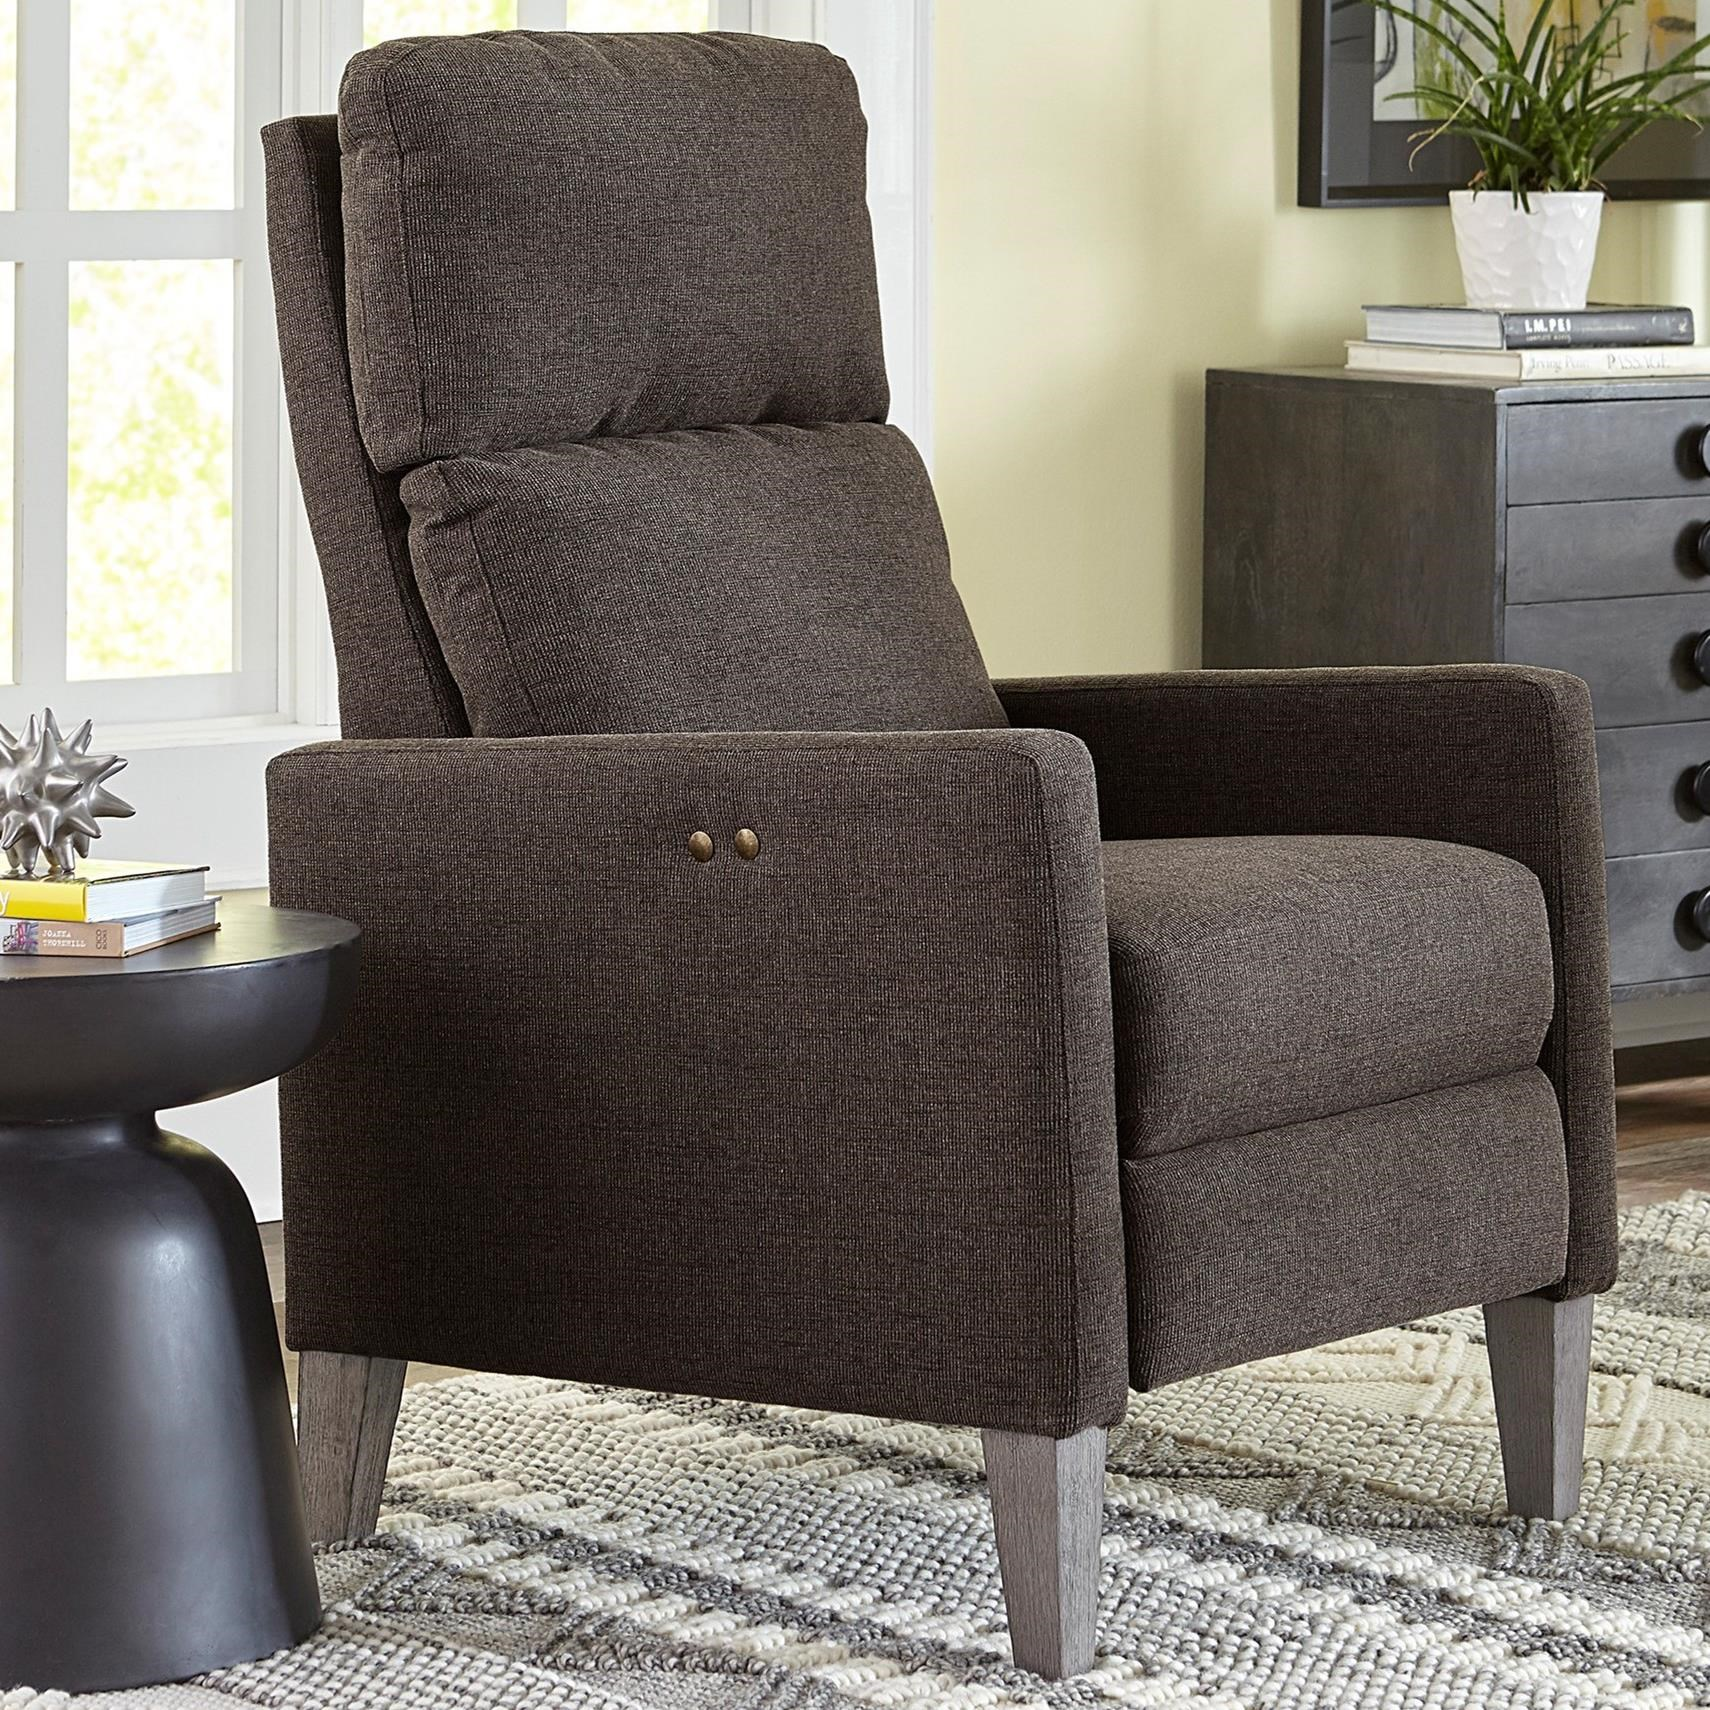 Three-Way Recliner